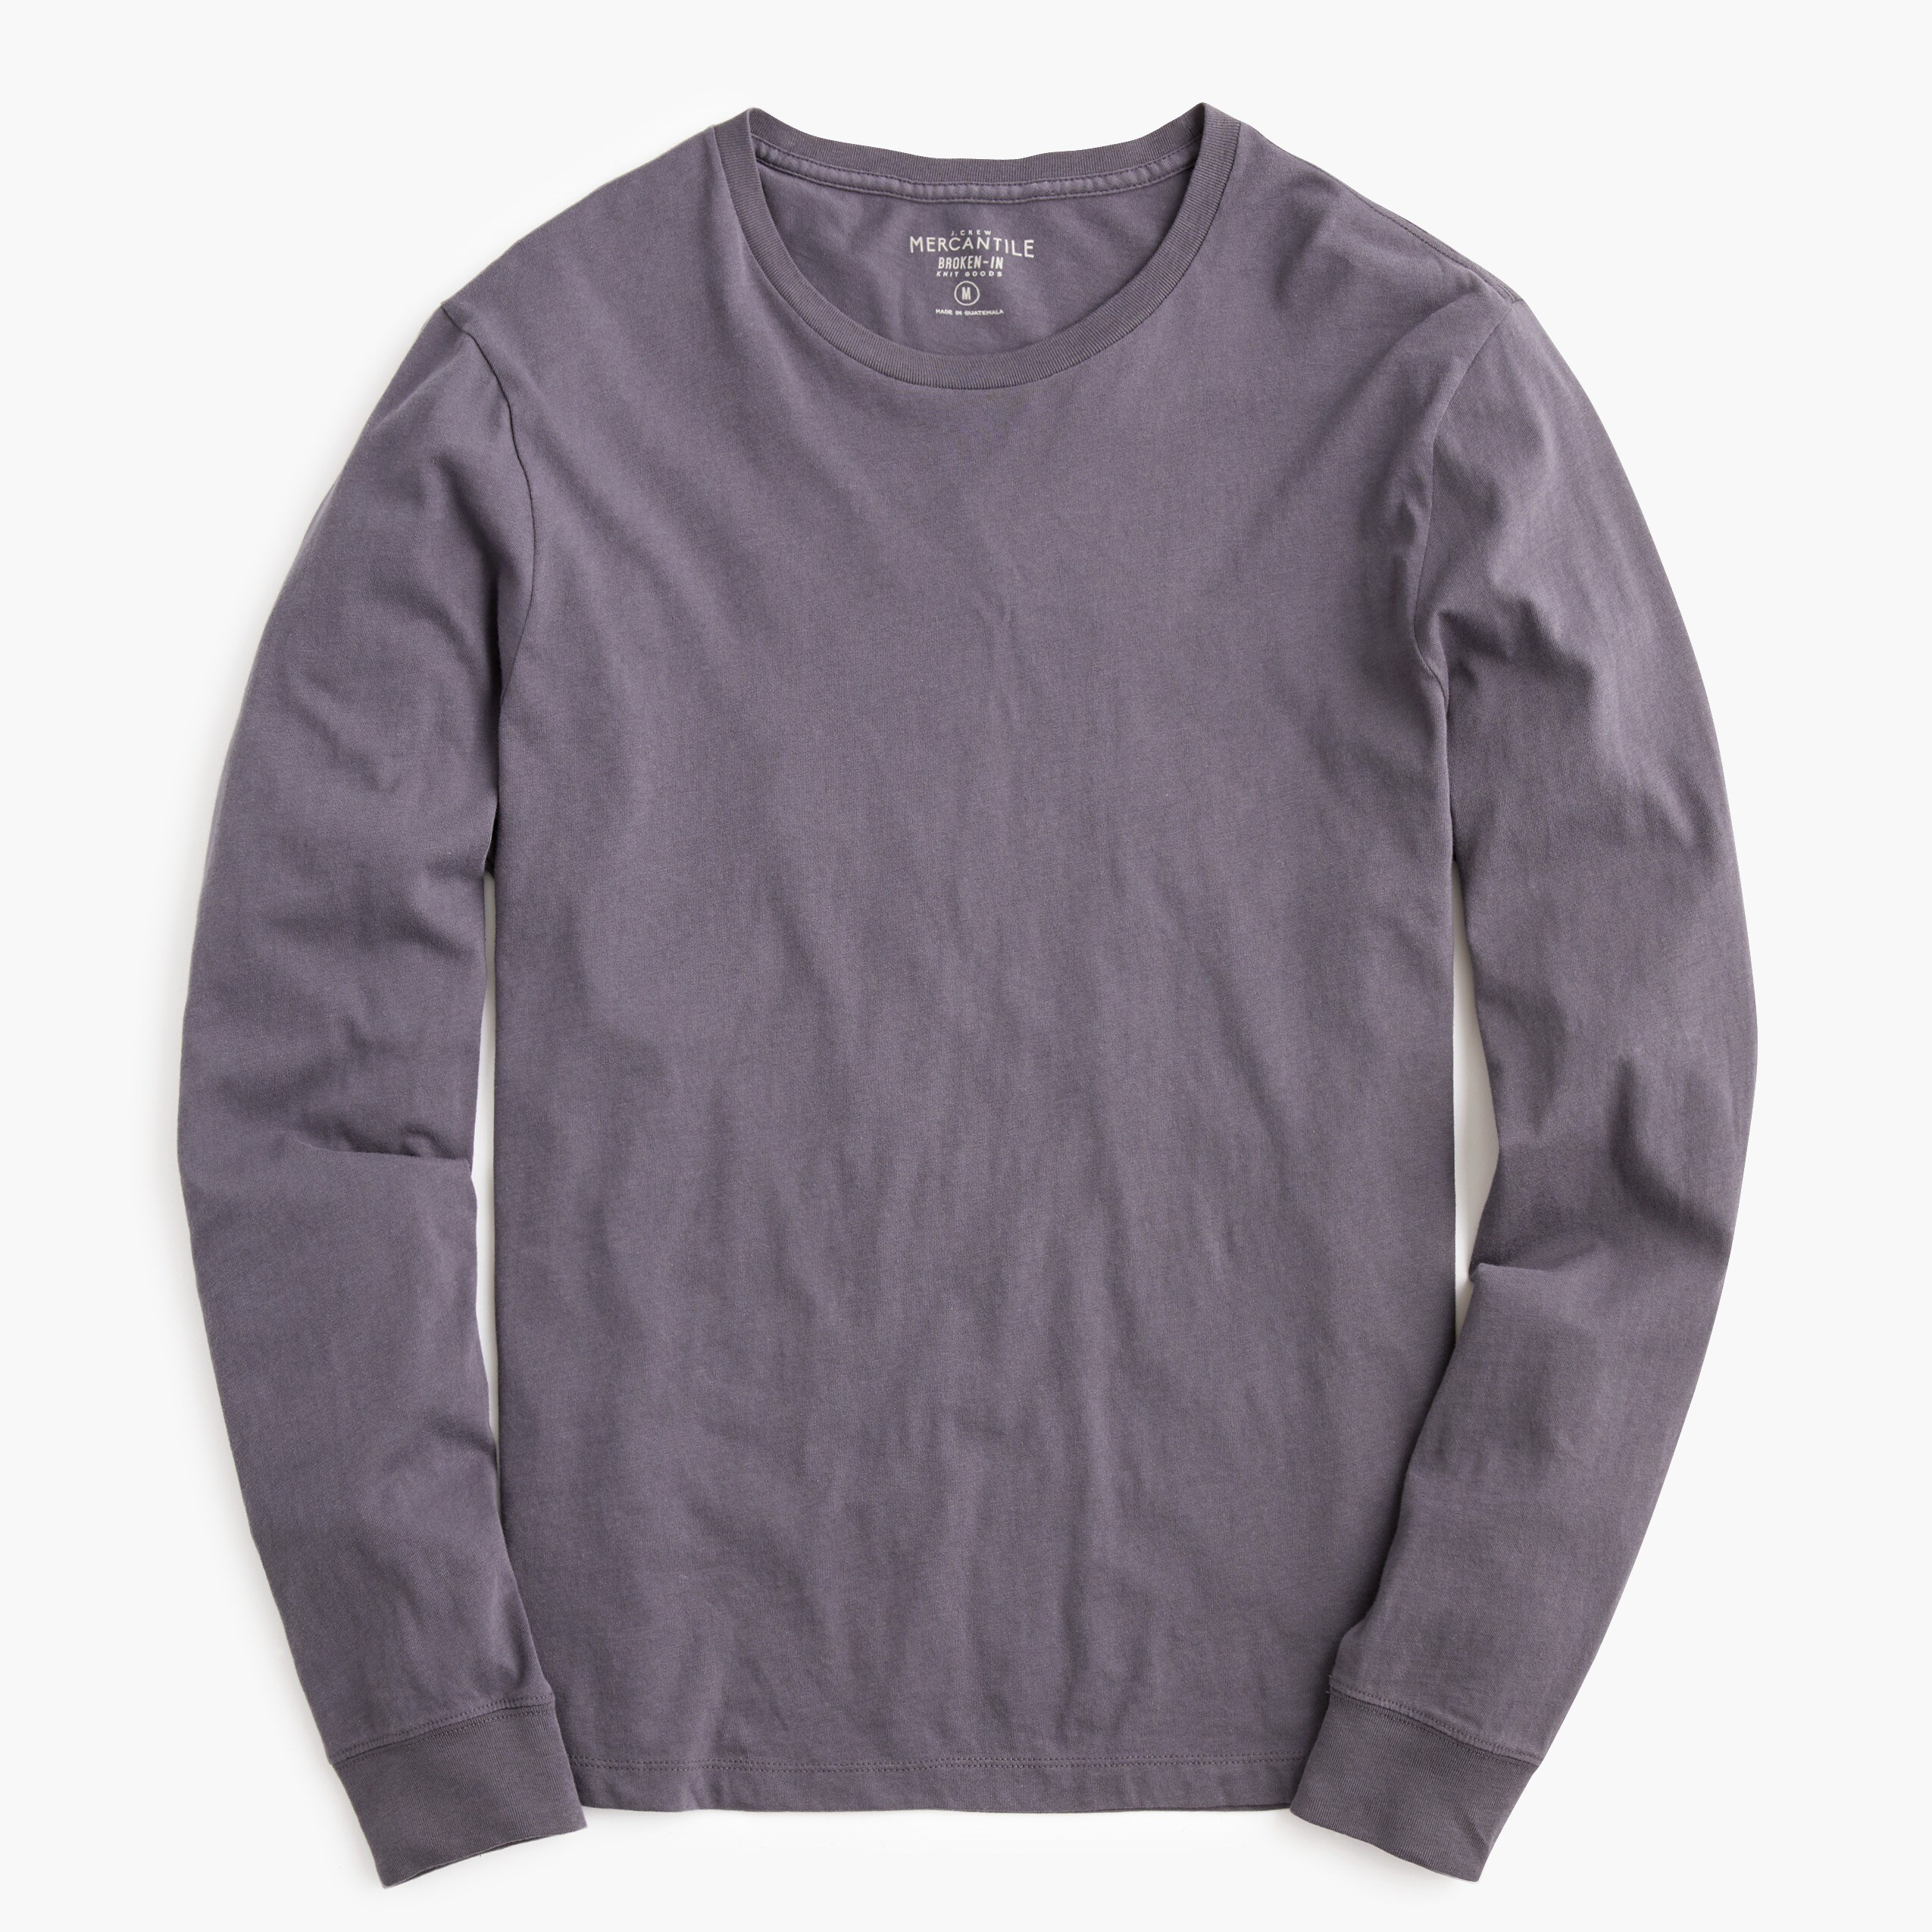 Image 4 for J.Crew Mercantile Broken-in long-sleeve T-shirt